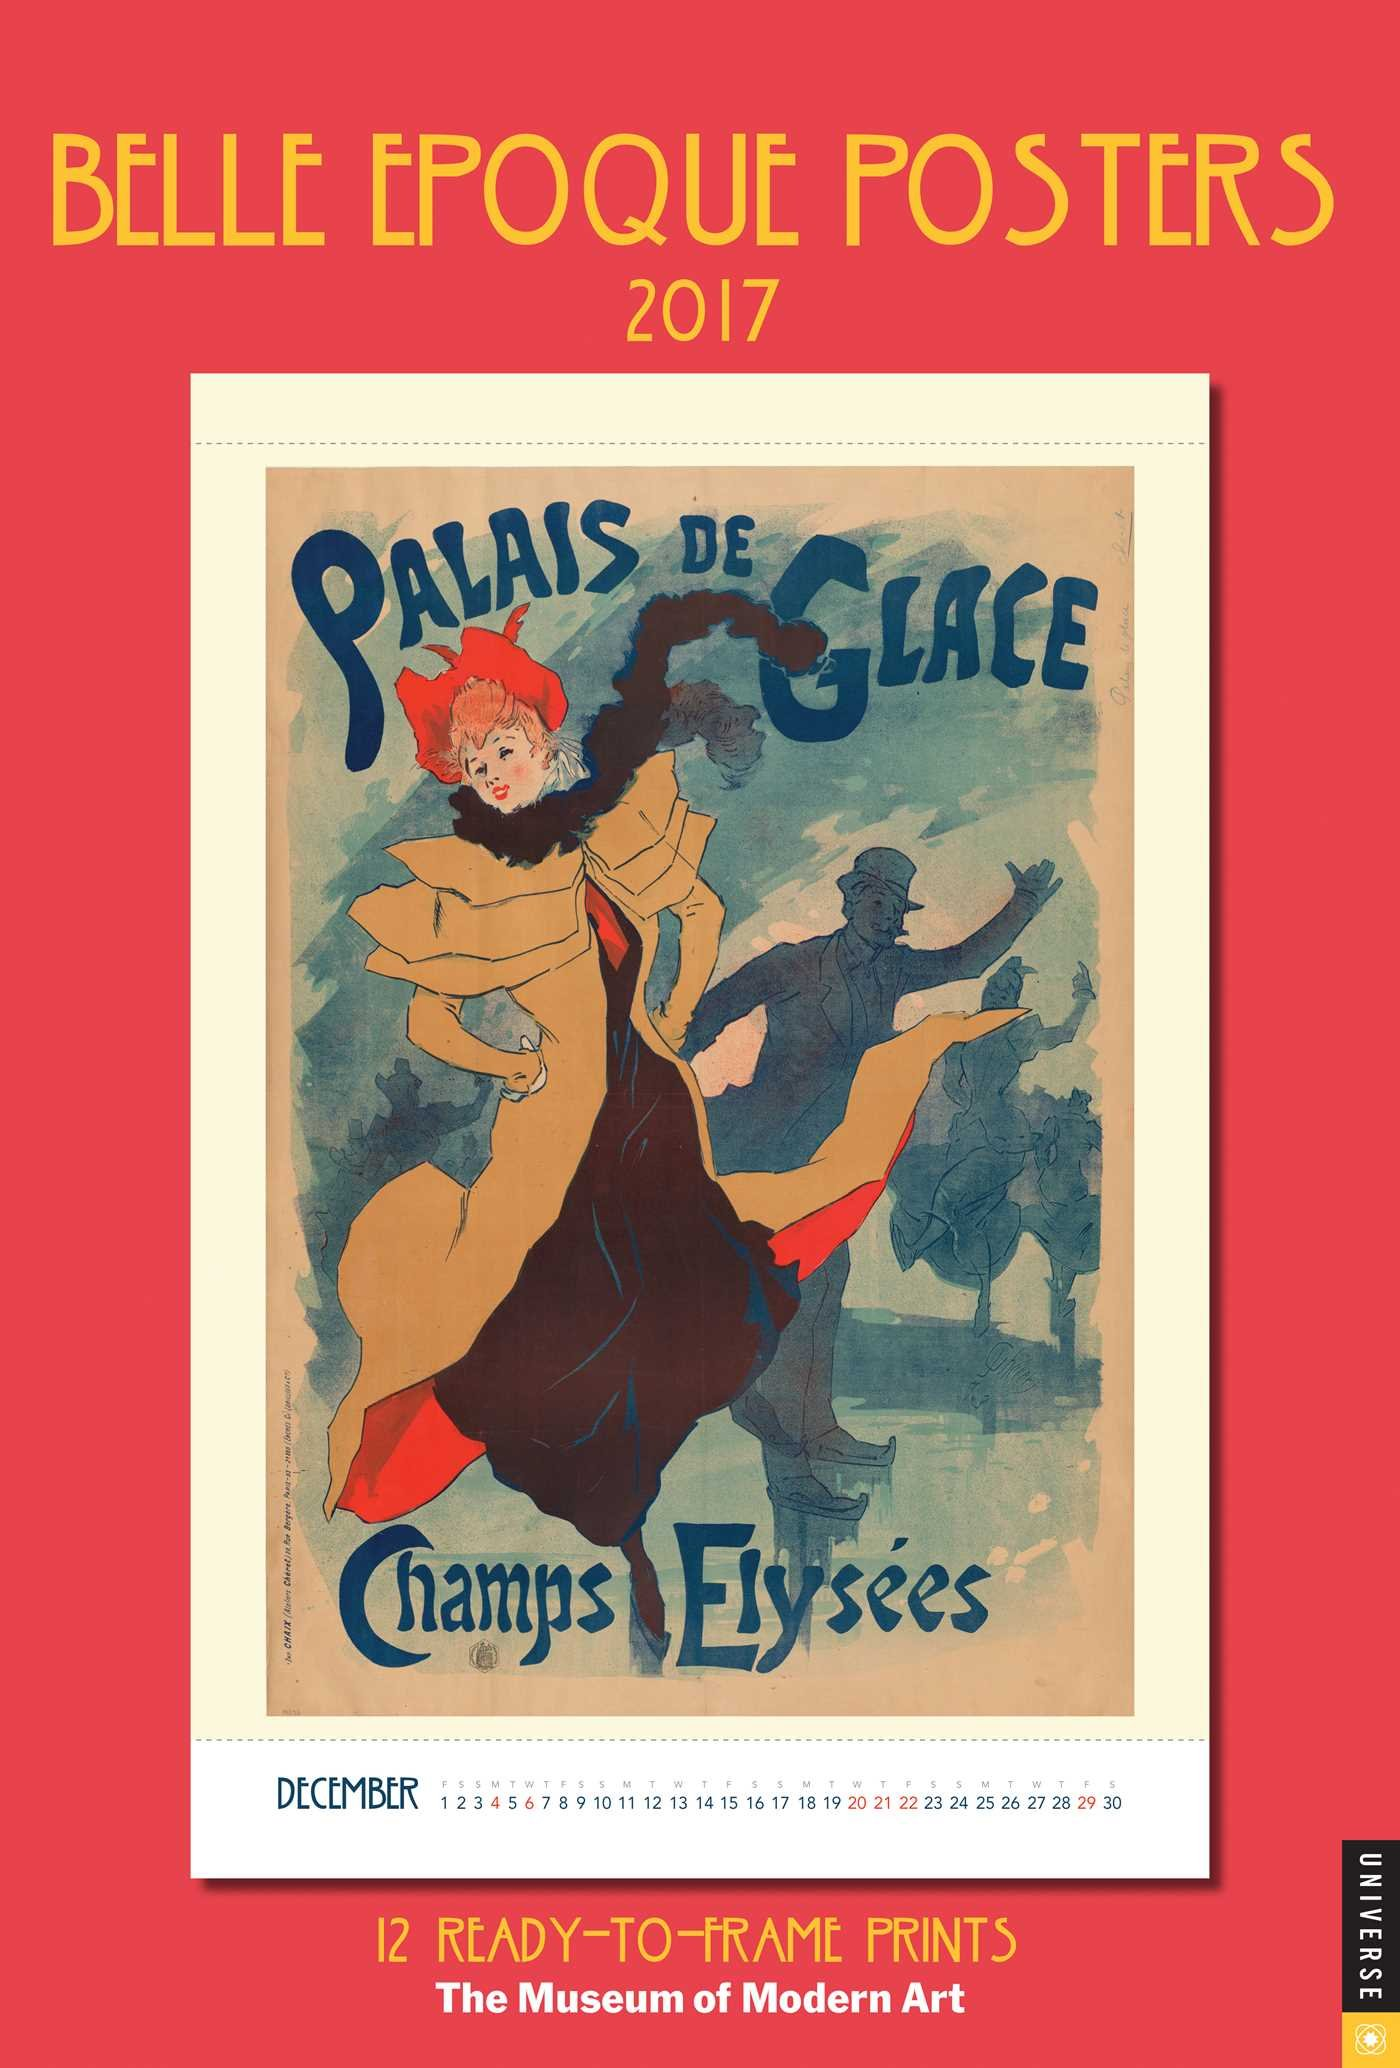 Belle Epoque Posters 2017 Poster Calendar: 12 Ready-to-Frame Prints from The Museum of Modern Art